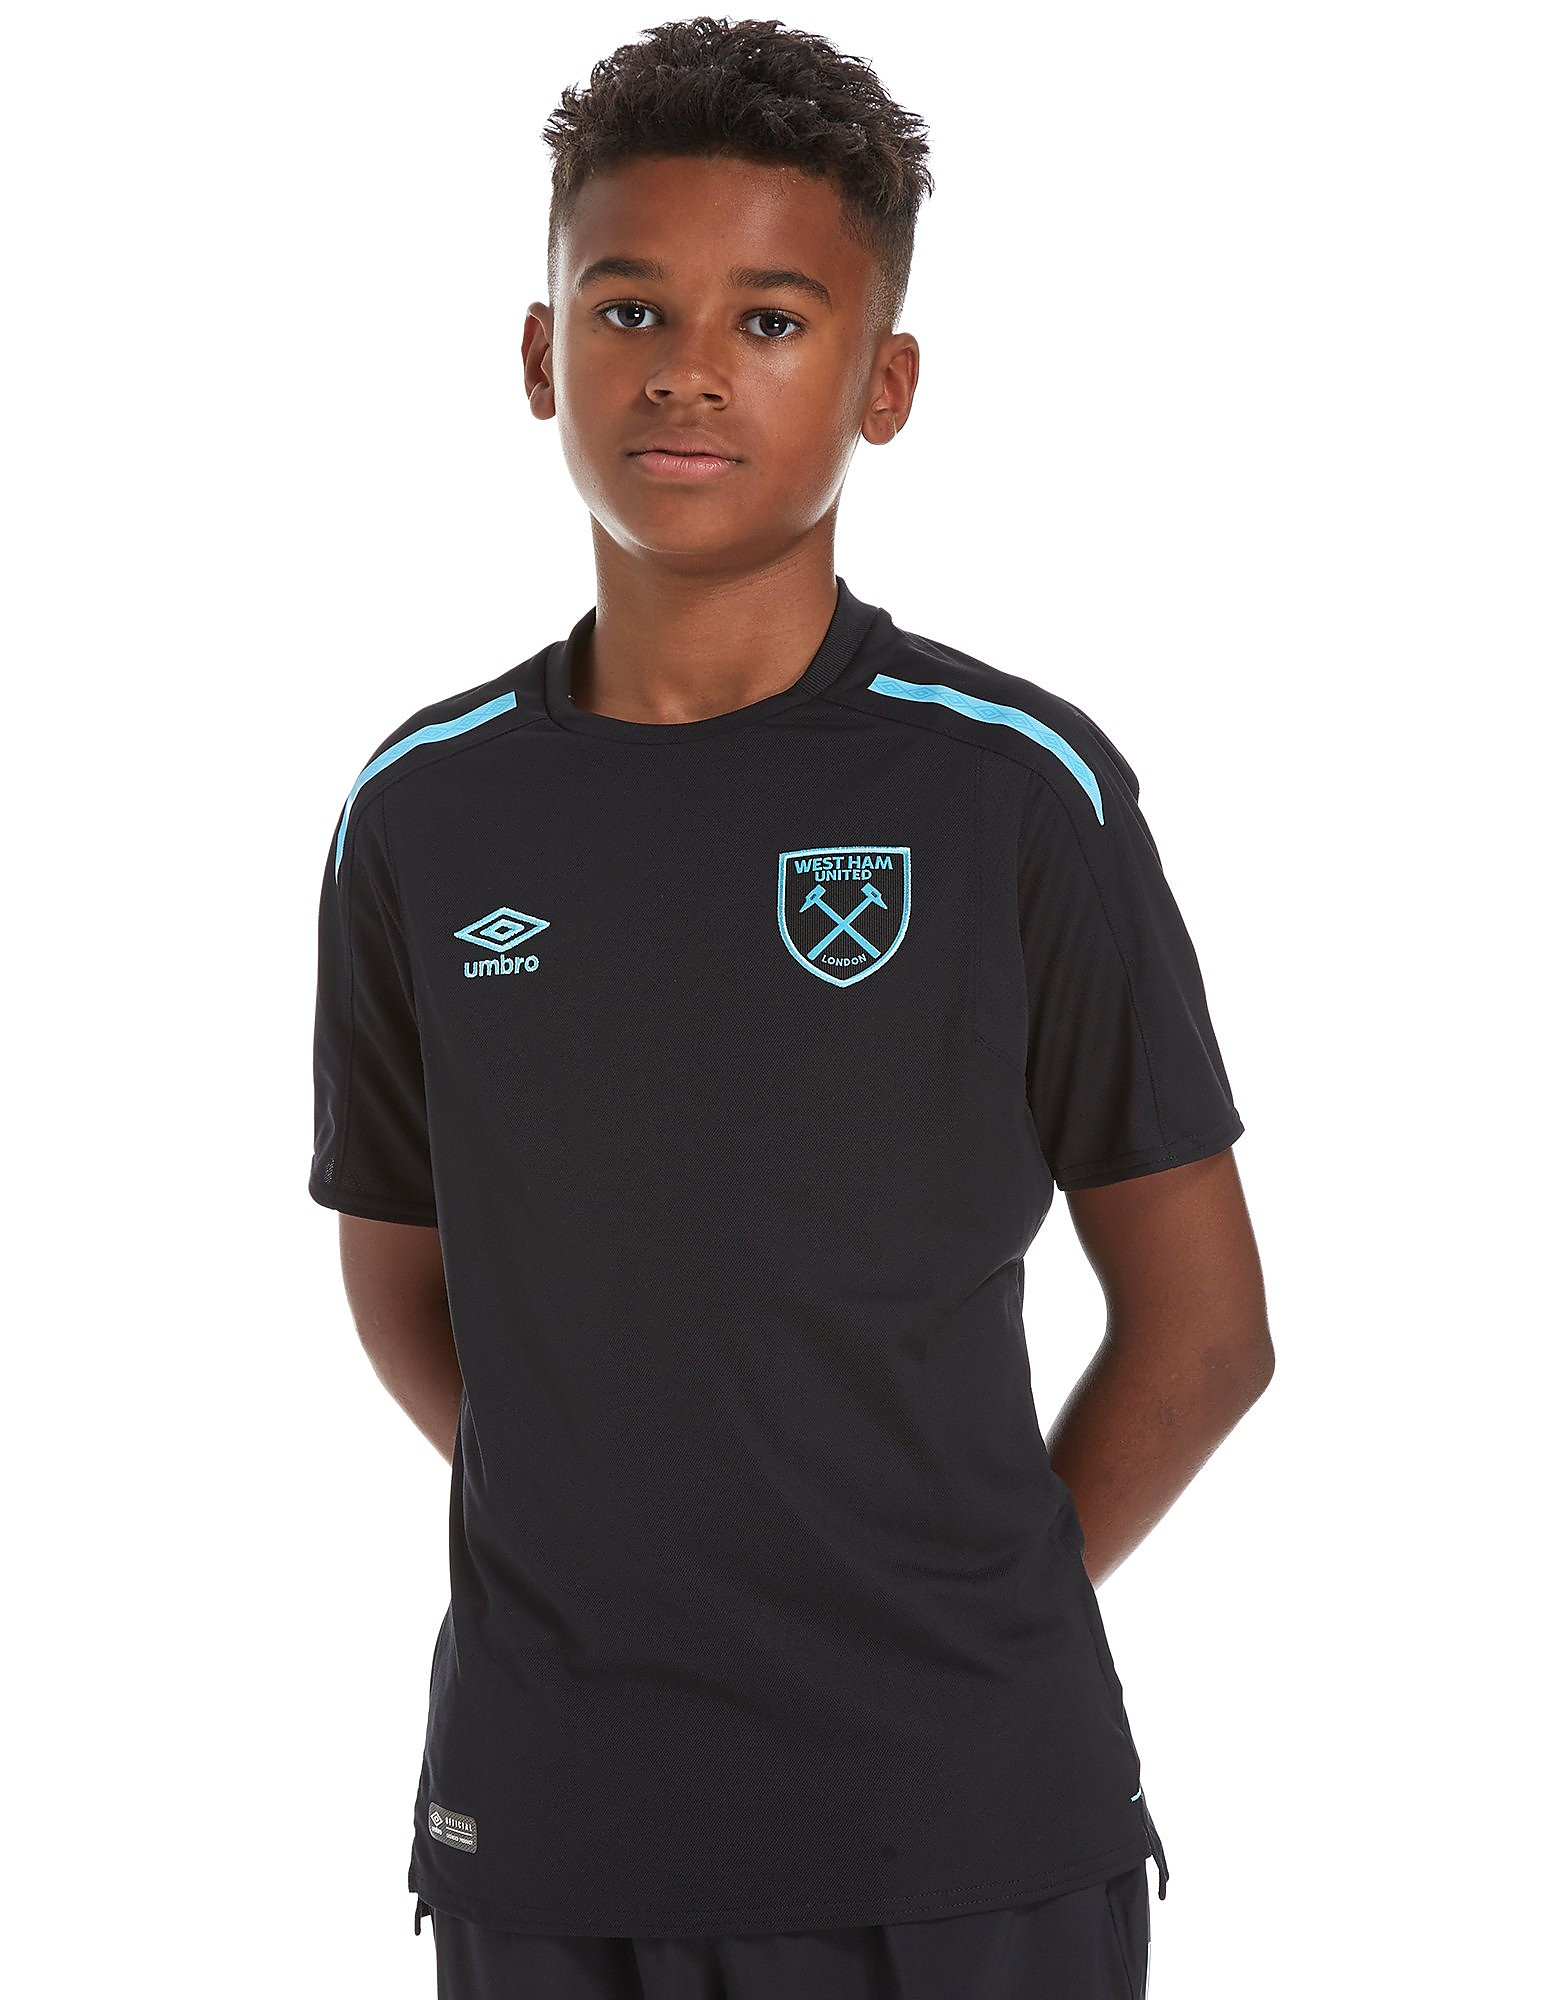 Umbro West Ham Utd 2017/18 Away Shirt Junior